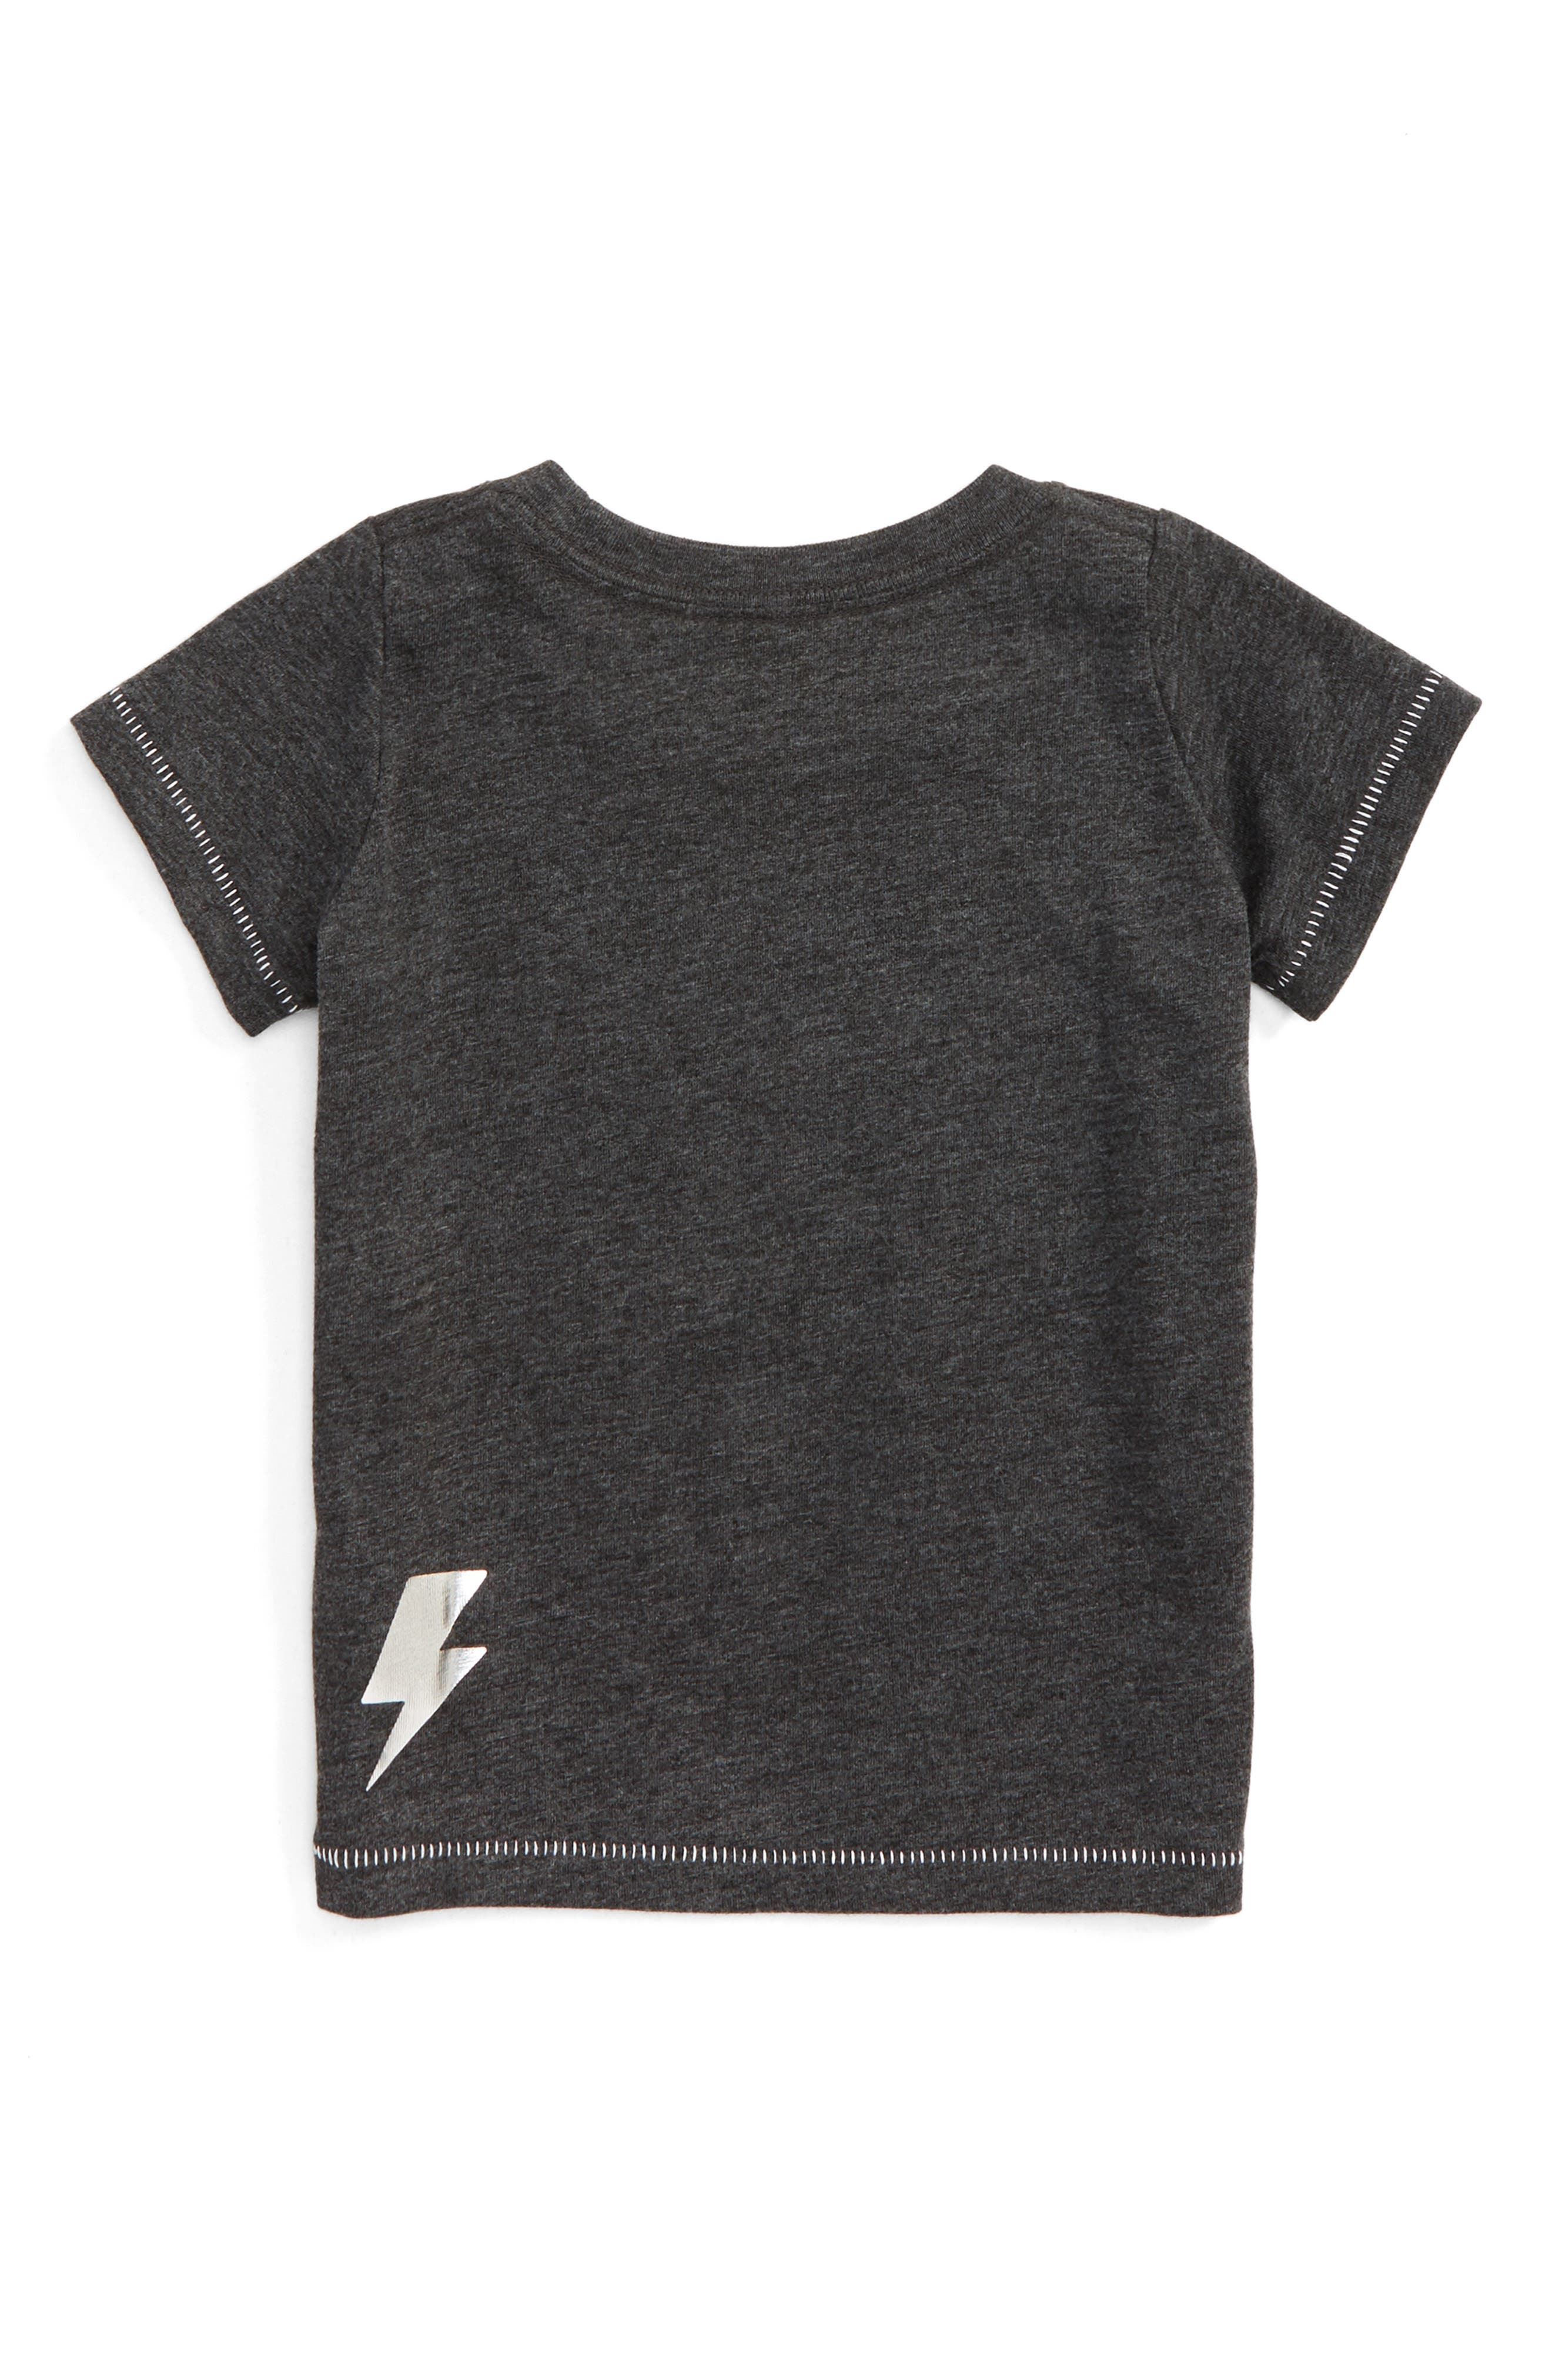 Powered By Fun Graphic Tee,                             Alternate thumbnail 2, color,                             021